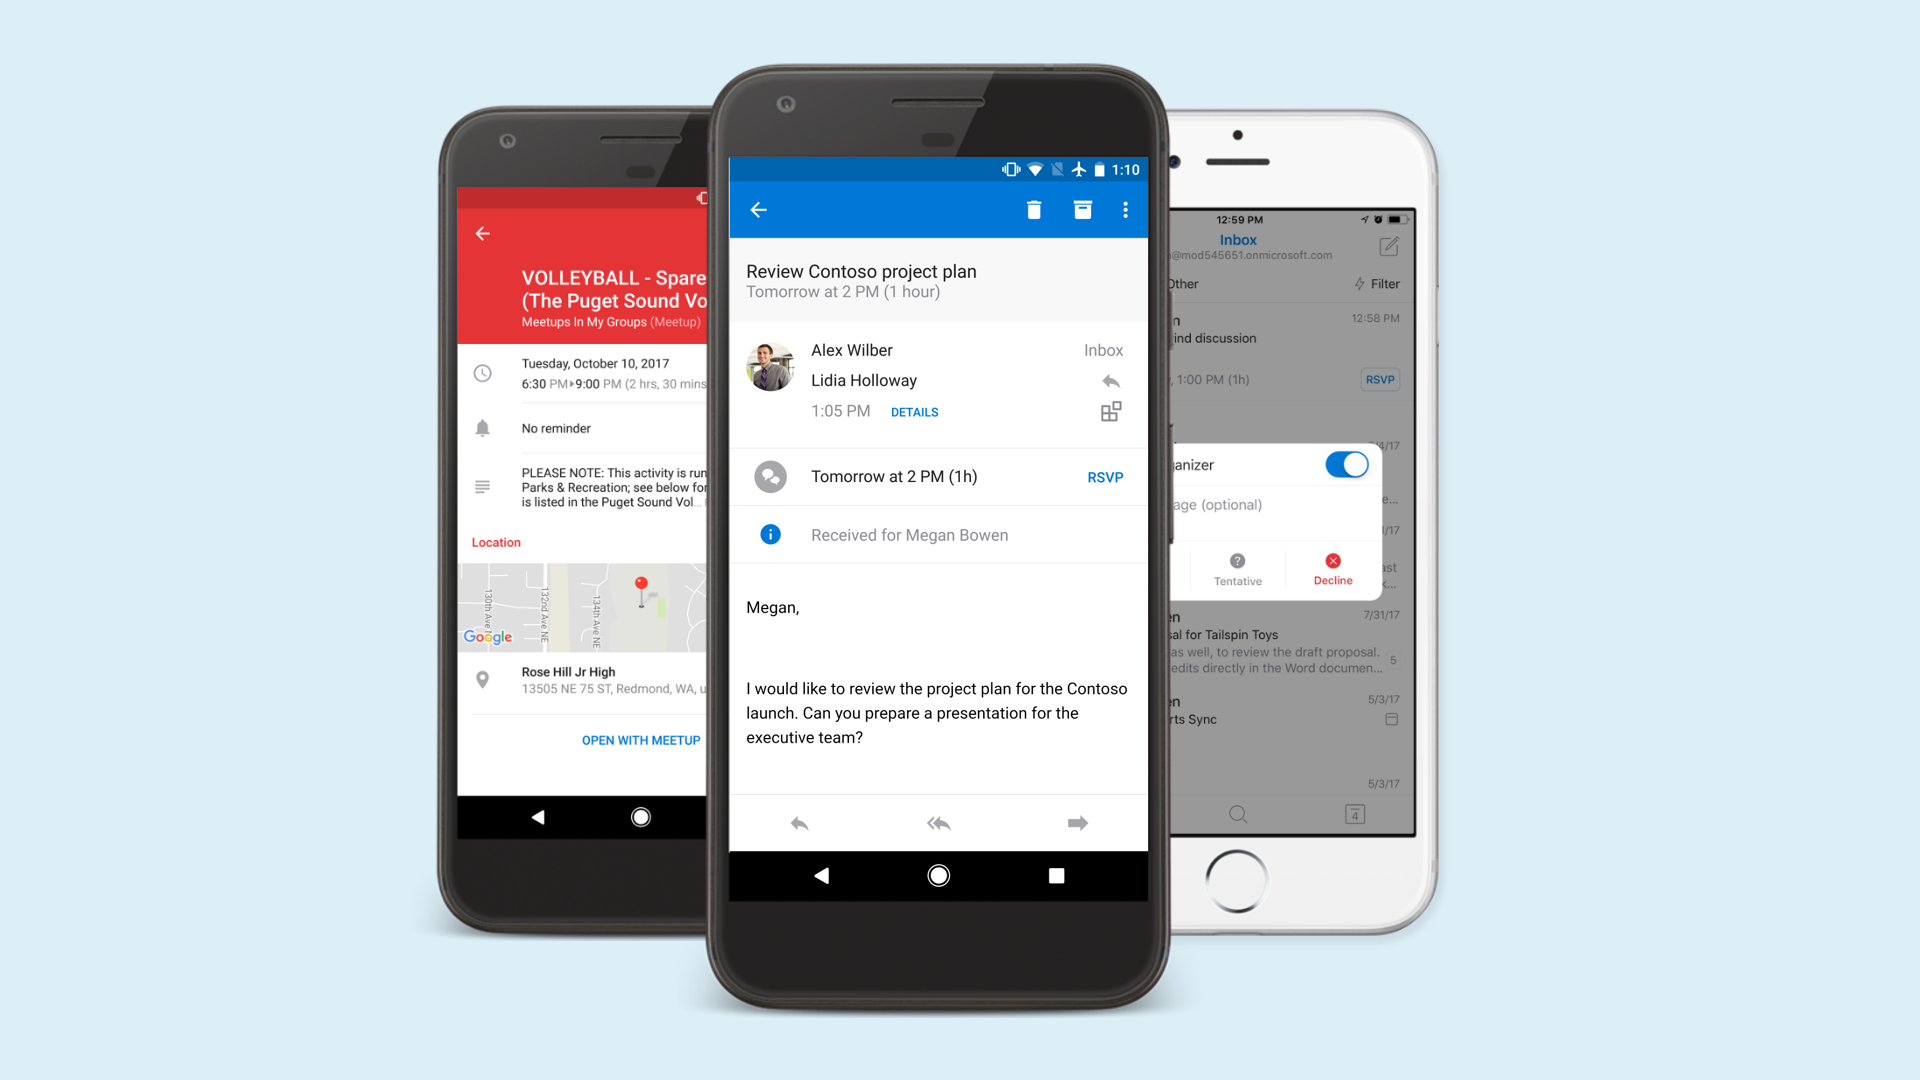 Outlook Calendar On Iphone >> Outlook Calendar Is Getting Major Improvements On Android And Ios